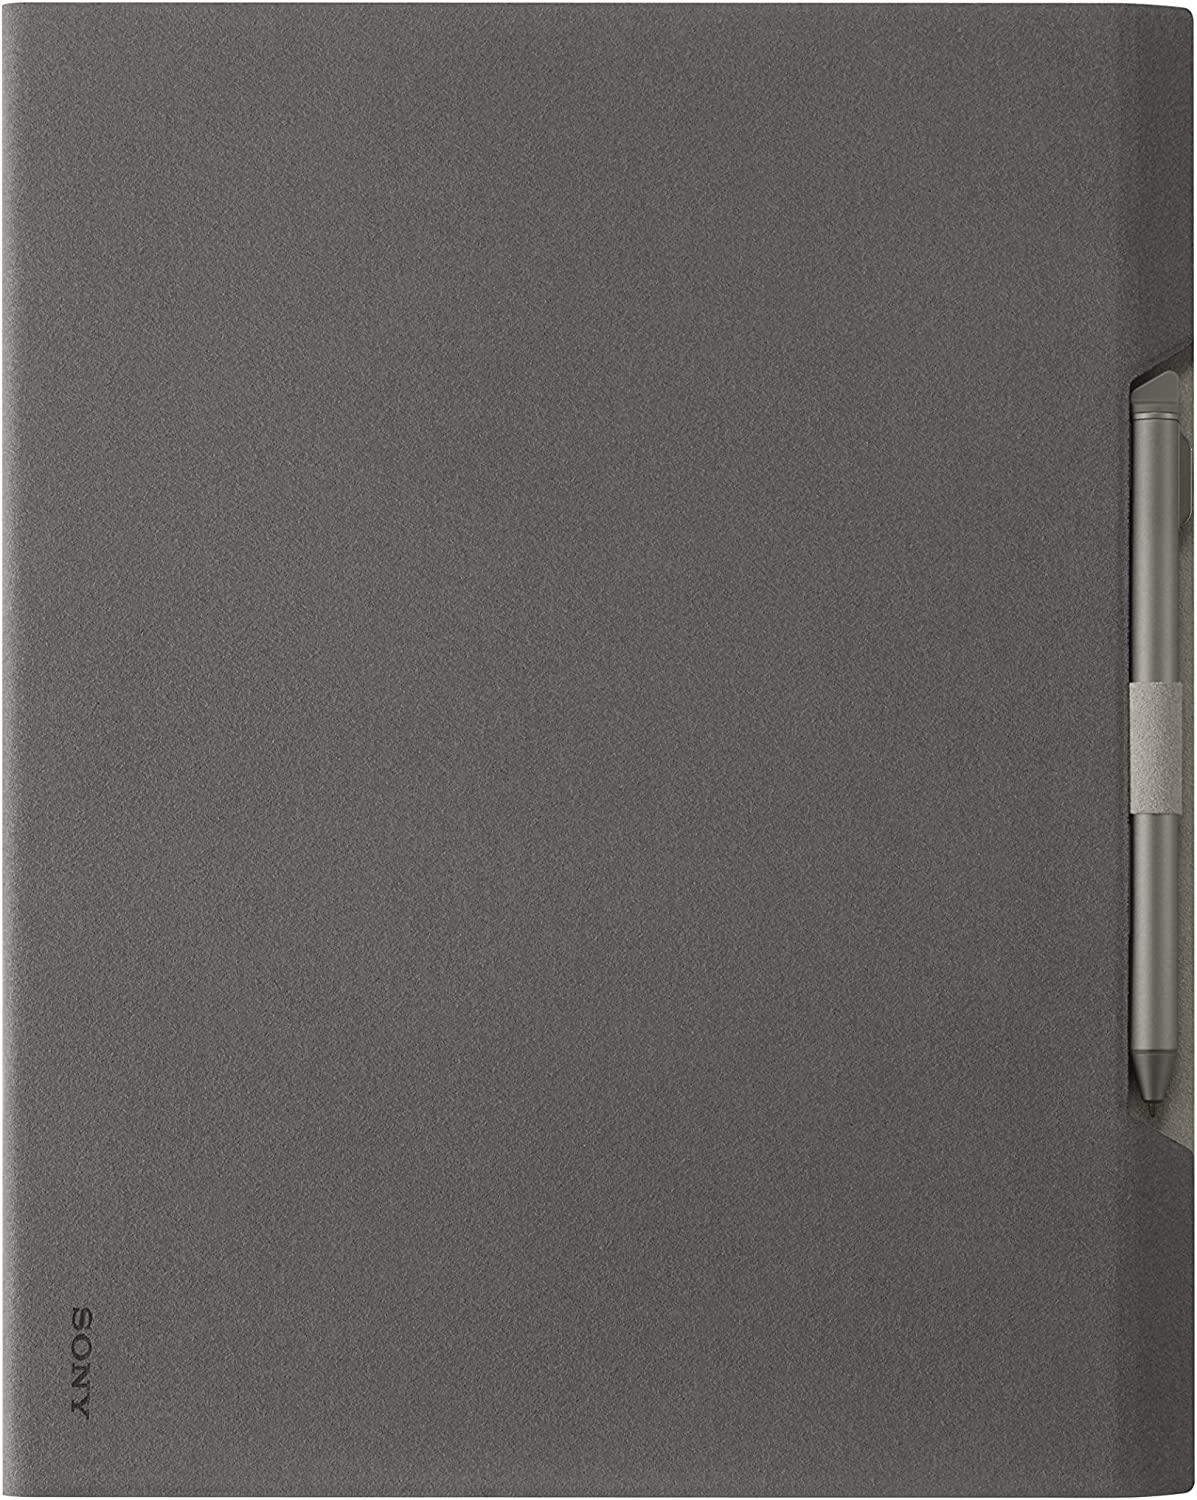 B072BD8RVM Sony DPTA-RC1 Portable Slim and Compact Design Cover for Dpt-RP1 91DQgtUf6oL